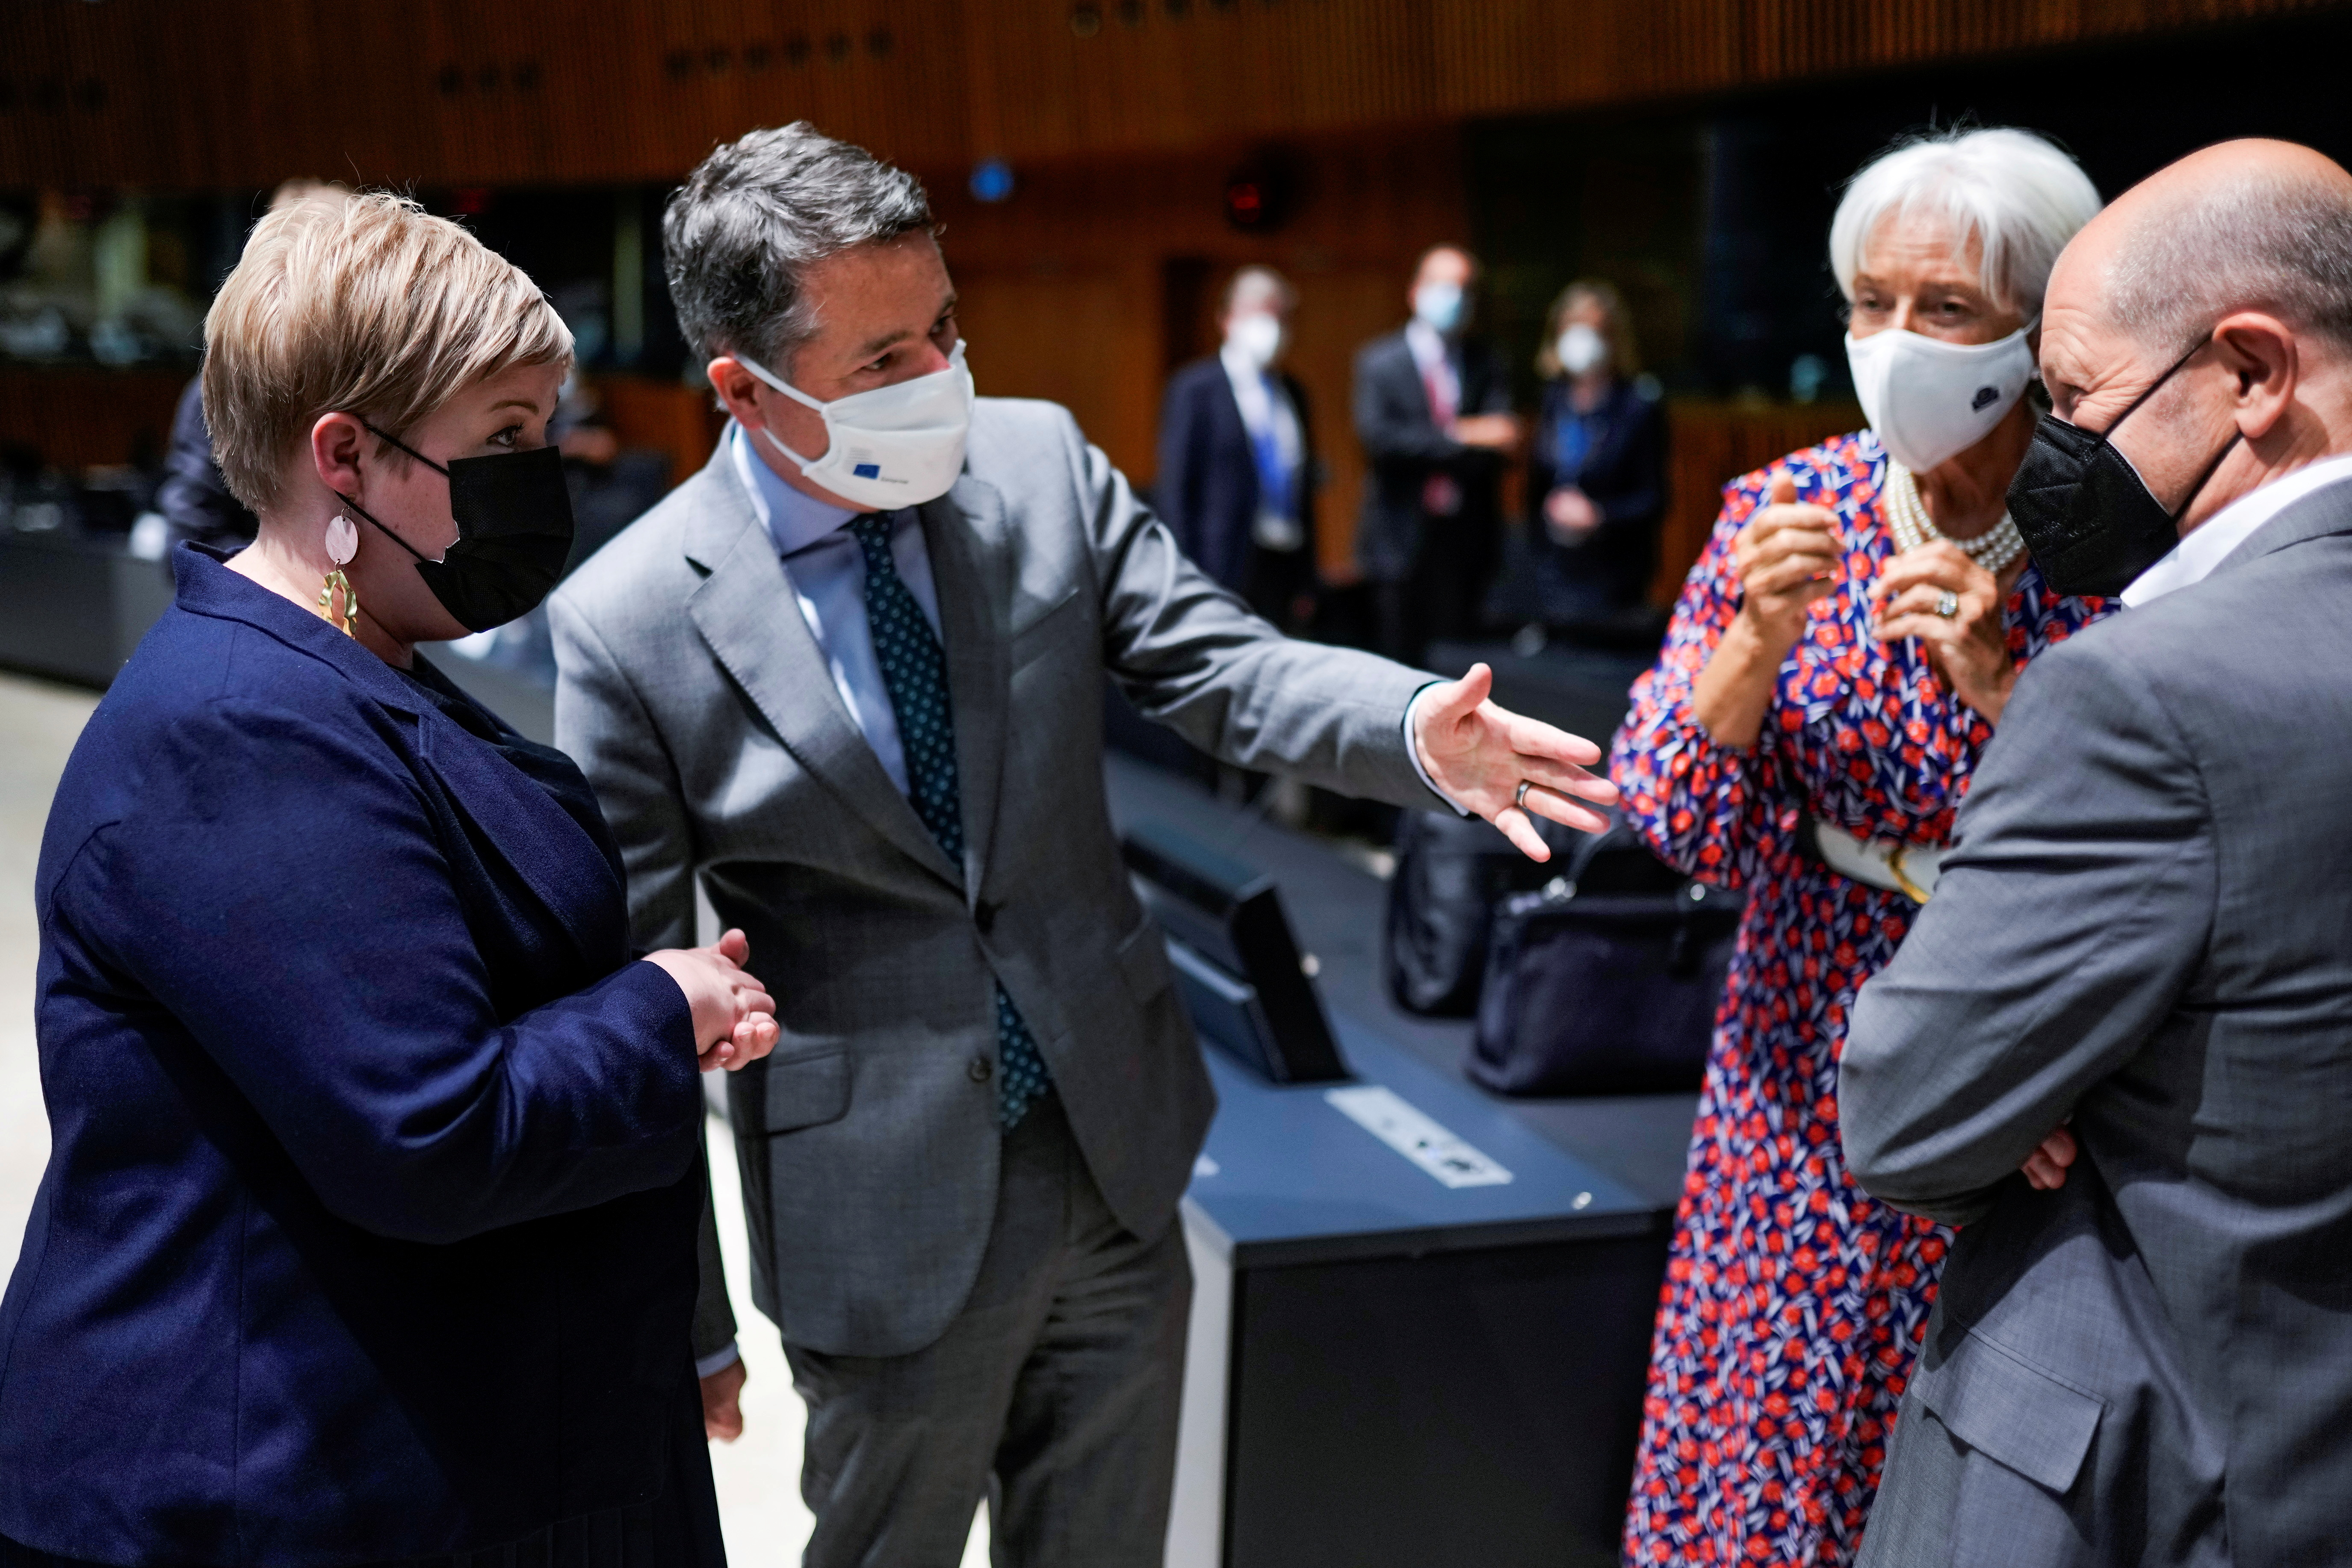 Finland's Finance Minister Annika Saarikko is welcomed by Eurogroup president Paschal Donohoe, European Central Bank President Christine Lagarde, and German Finance Minister Olaf Scholz, during a meeting of Eurogroup Finance Ministers at the European Council building in Luxembourg, Luxembourg June 17, 2021. Francisco Seco/Pool via REUTERS